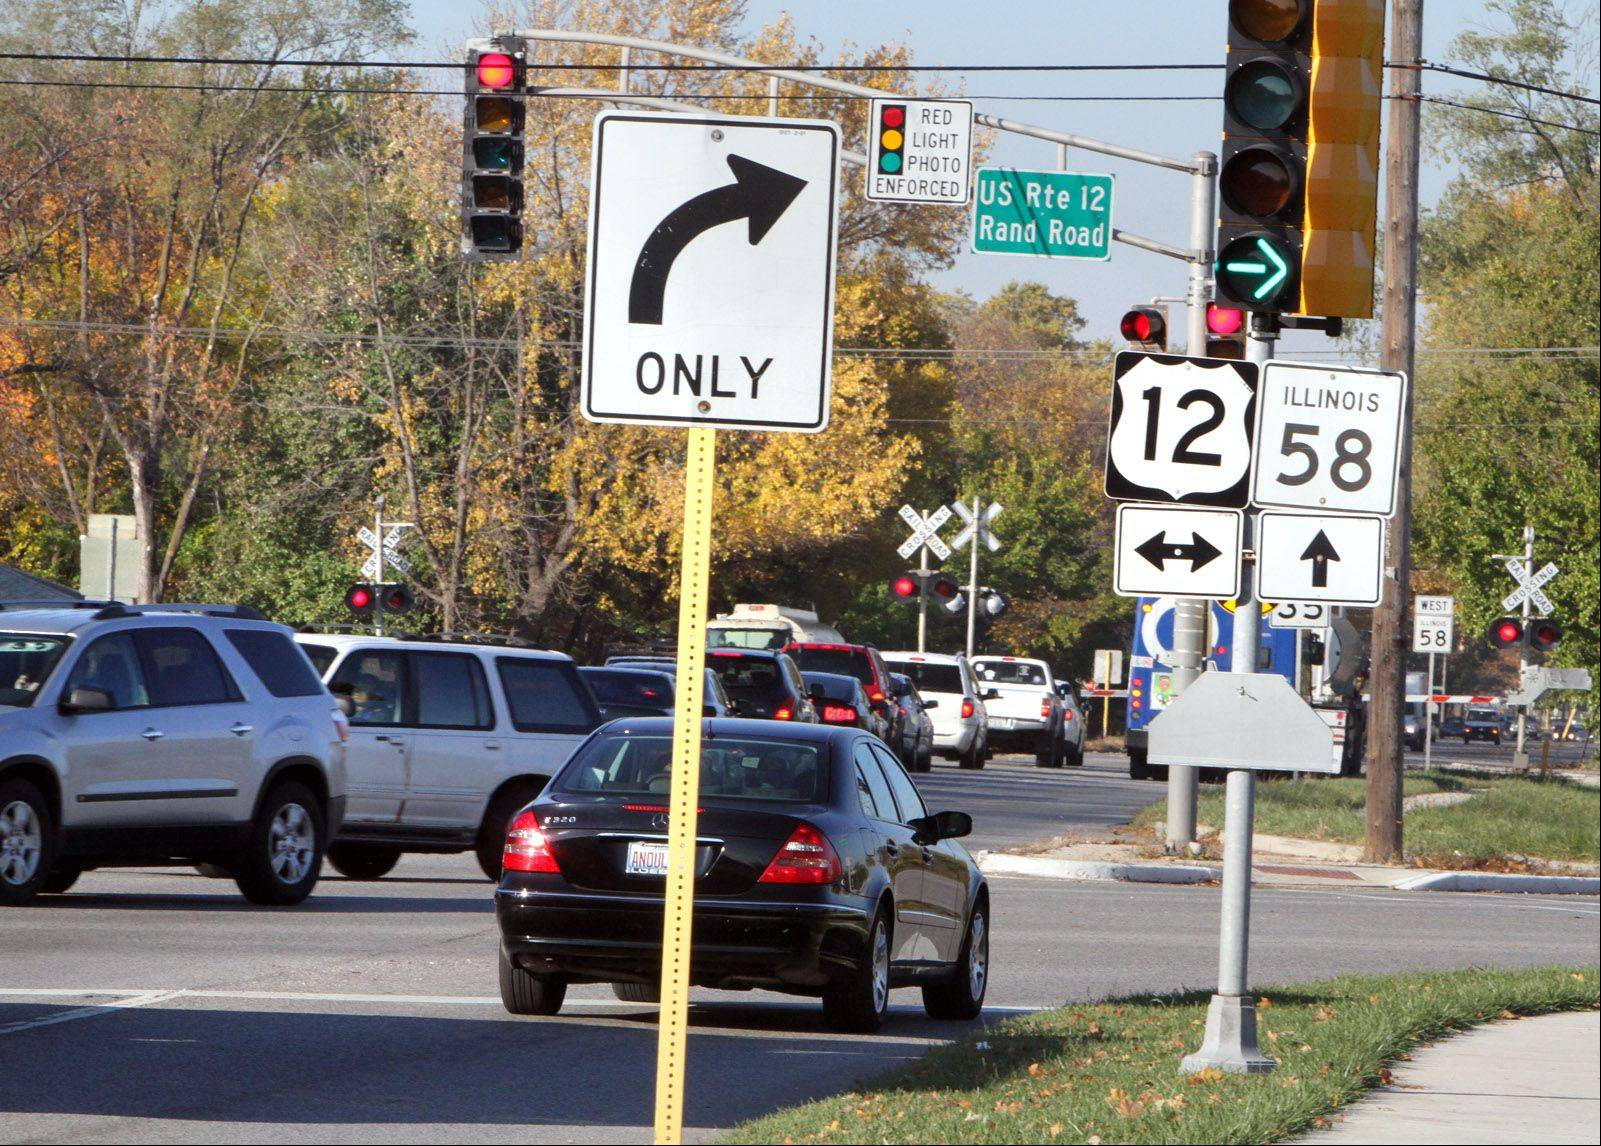 Des Plaines resident urges city to remove red-light cameras